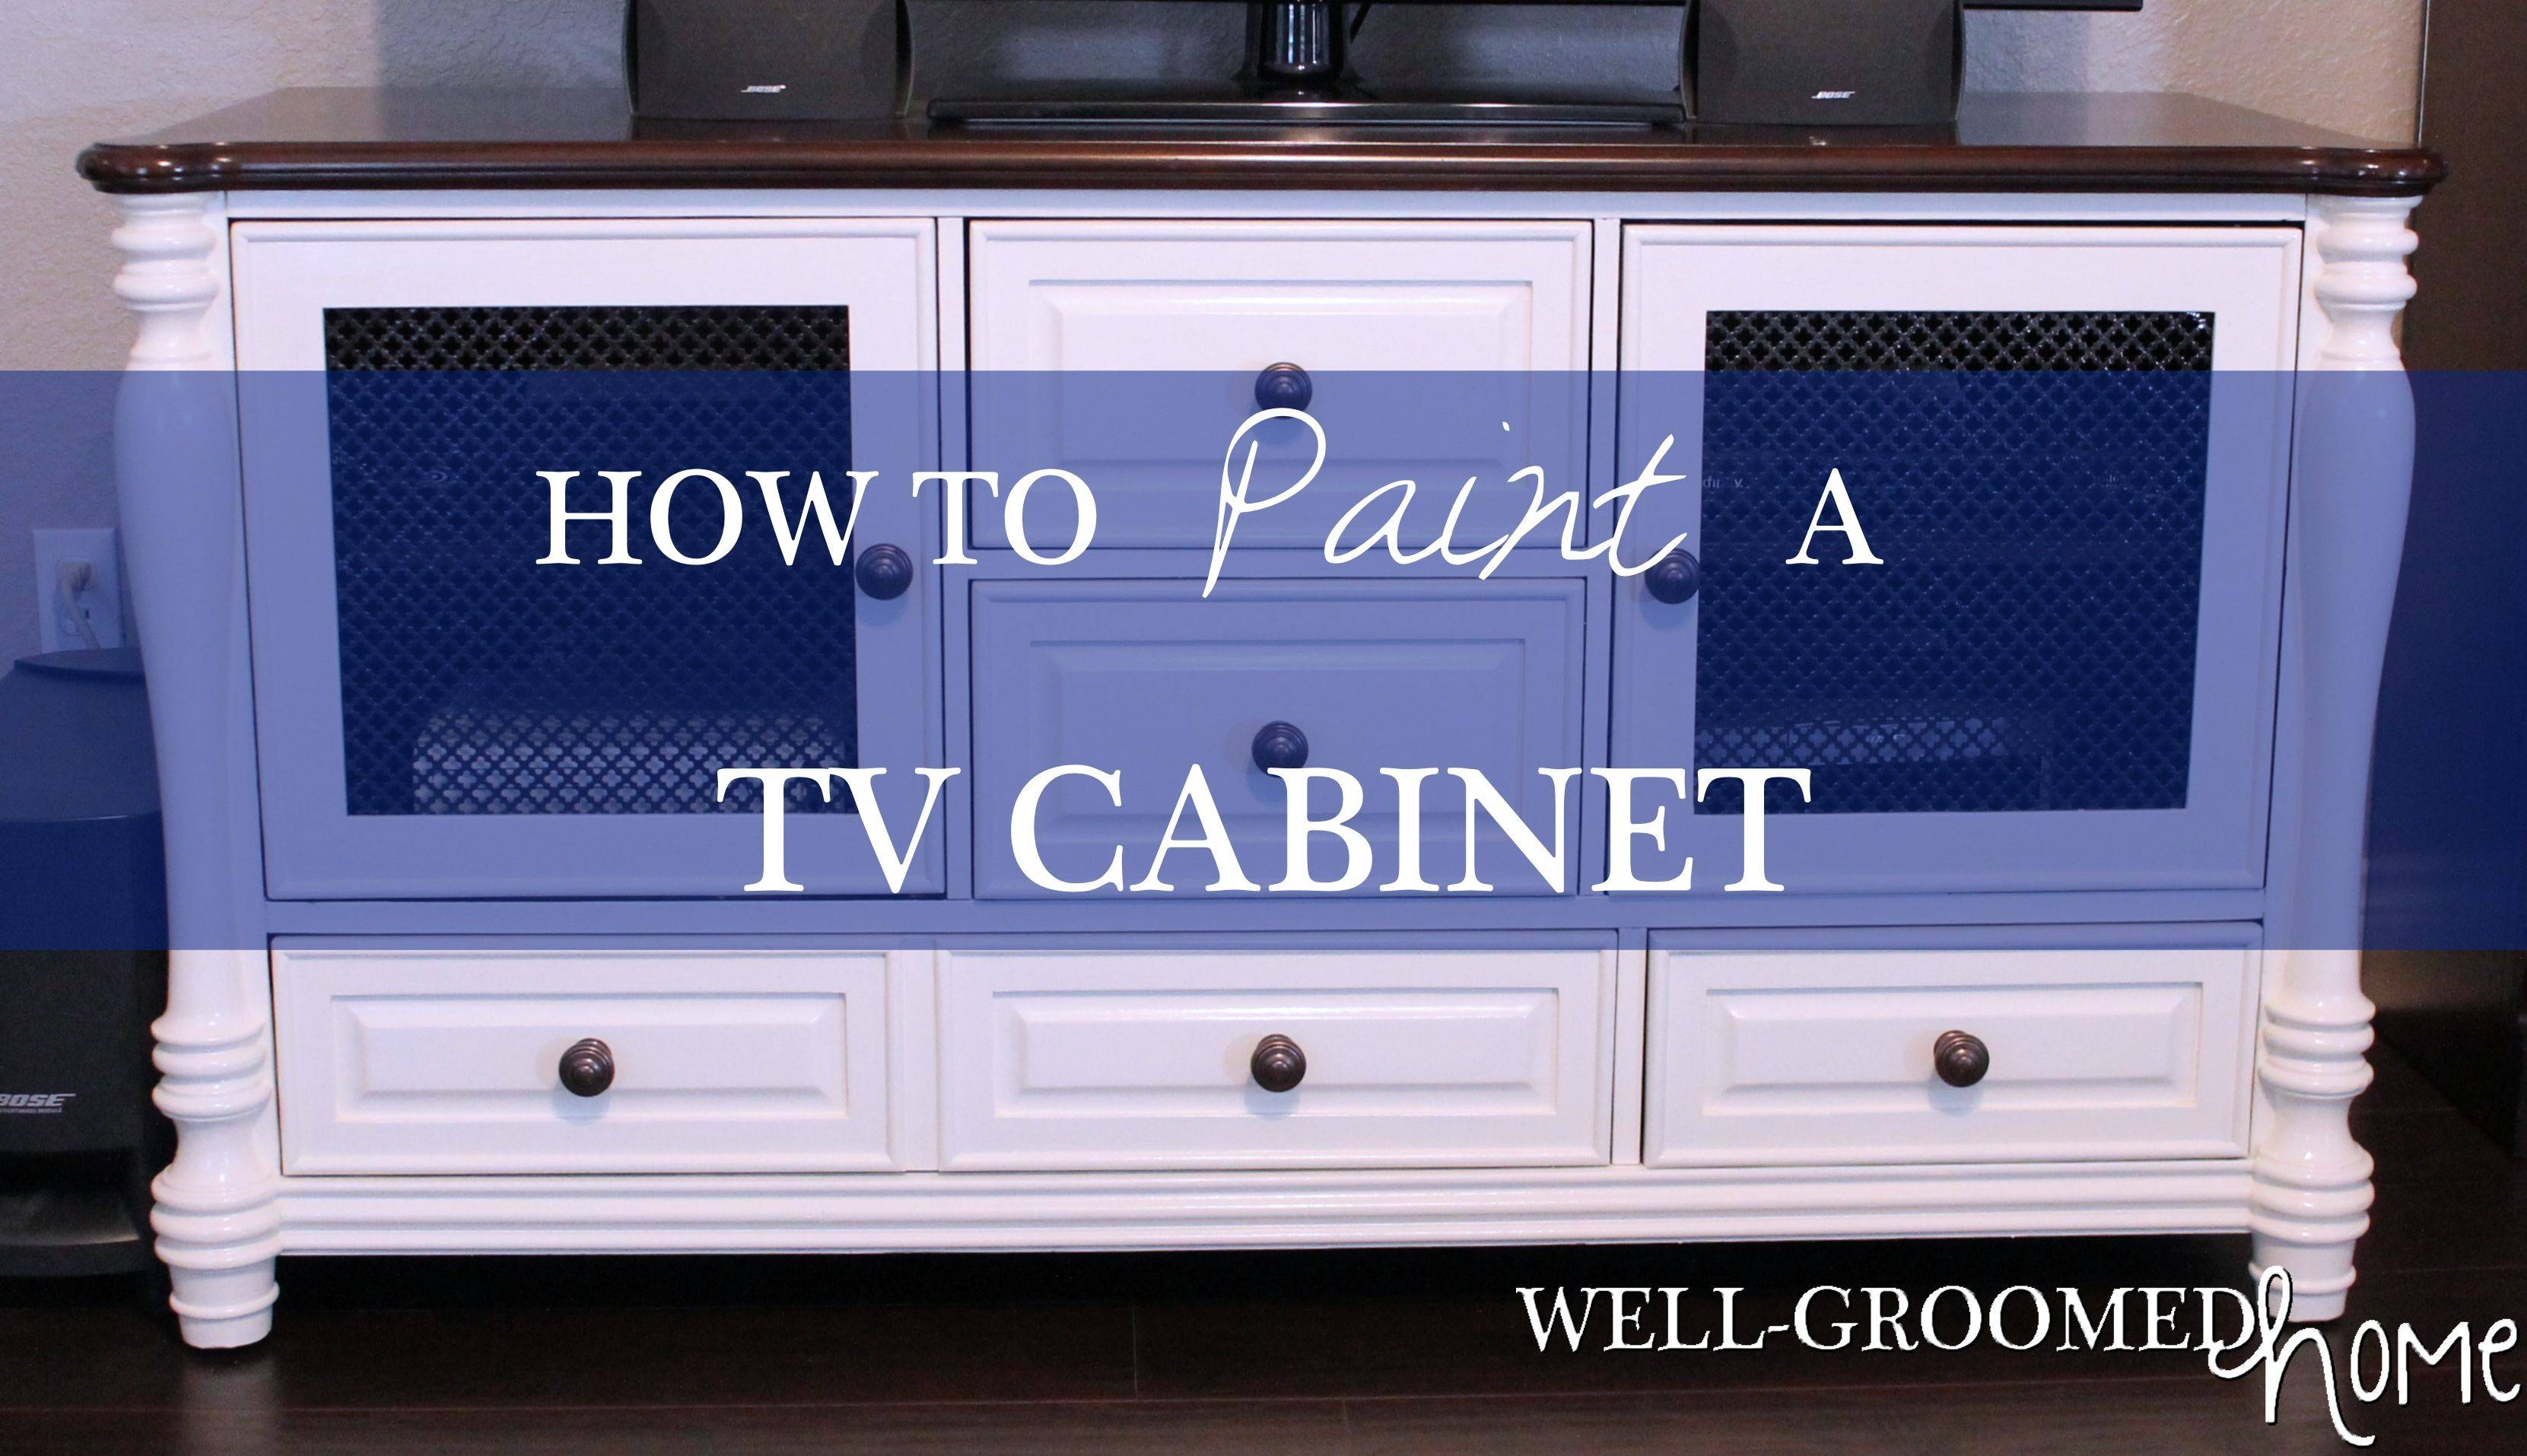 Painting A Tv Cabinet - Well-Groomed Home with regard to White Painted Tv Cabinets (Image 13 of 15)